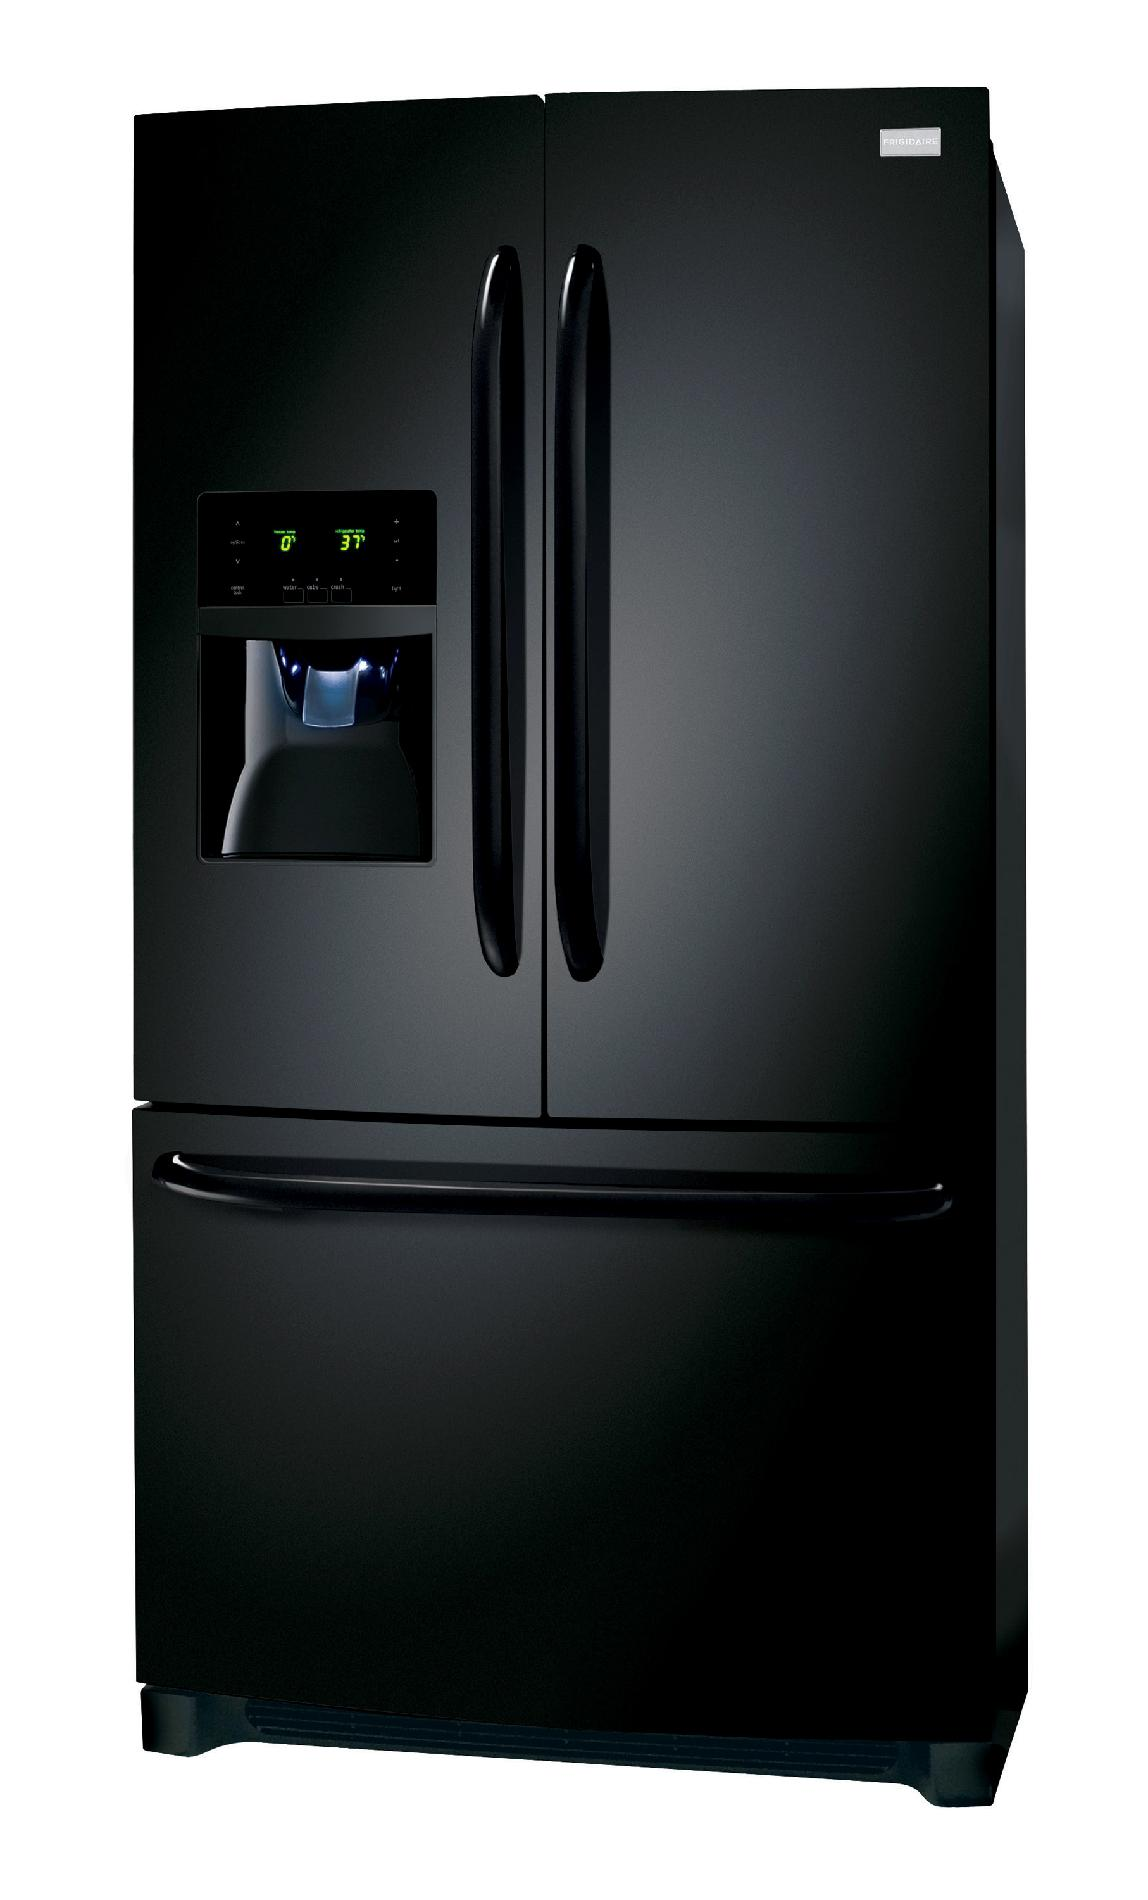 Frigidaire FFHB2740PE 26.7 cu. ft. French Door Refrigerator - Ebony Black